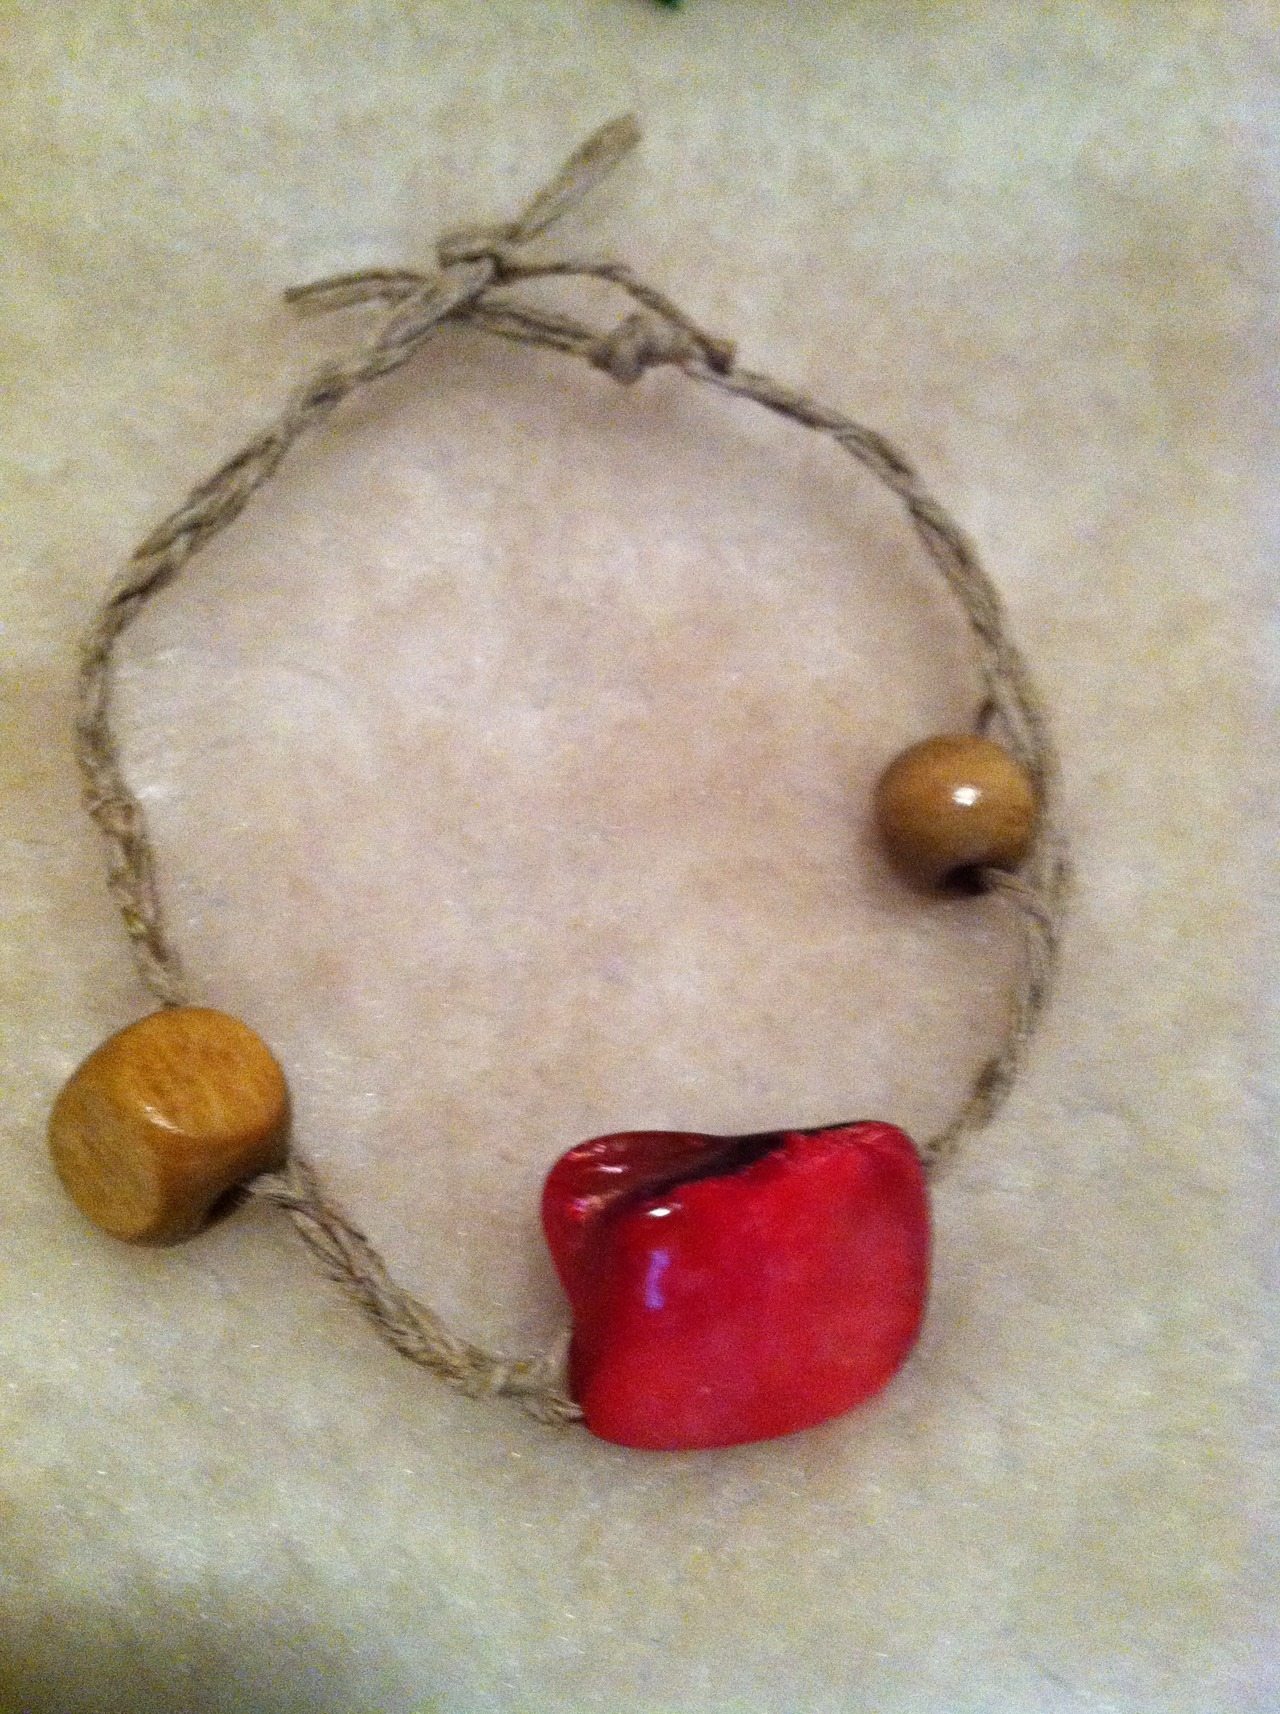 Just added the first batch of my Rustic Style Handmade Bracelets up for sale. Get your hands on one before they're gone! They're made with lots of love! :)  http://www.ebay.com/sch/mcflyqueen/m.html?_nkw=&_armrs=1&_from=&_ipg=&_trksid=p3686